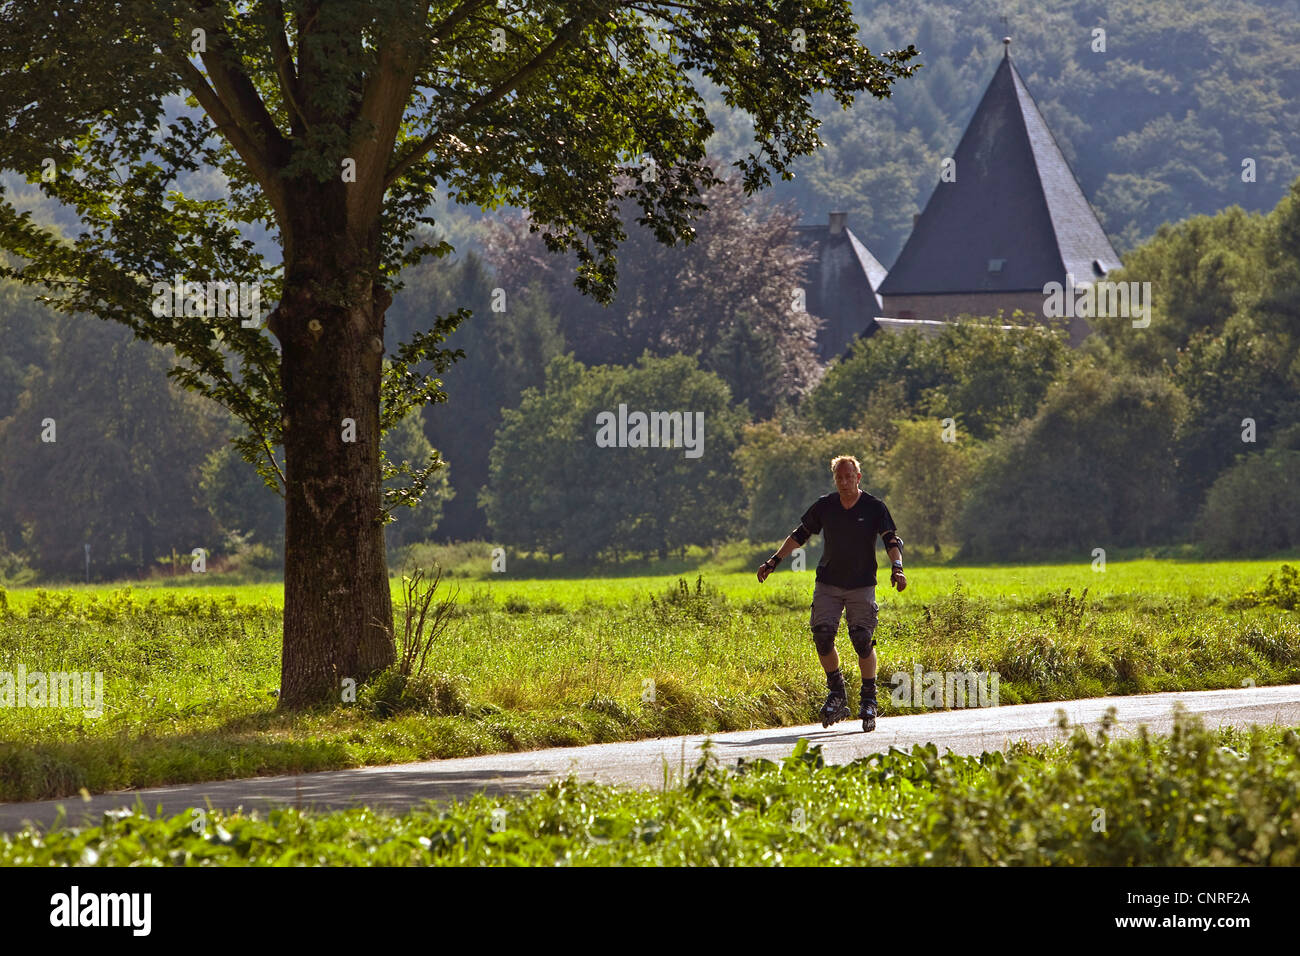 Inline slater on the Ruhr Valley Cycleway, Kemnade castle in the background, Germany, North Rhine-Westphalia, Ruhr - Stock Image